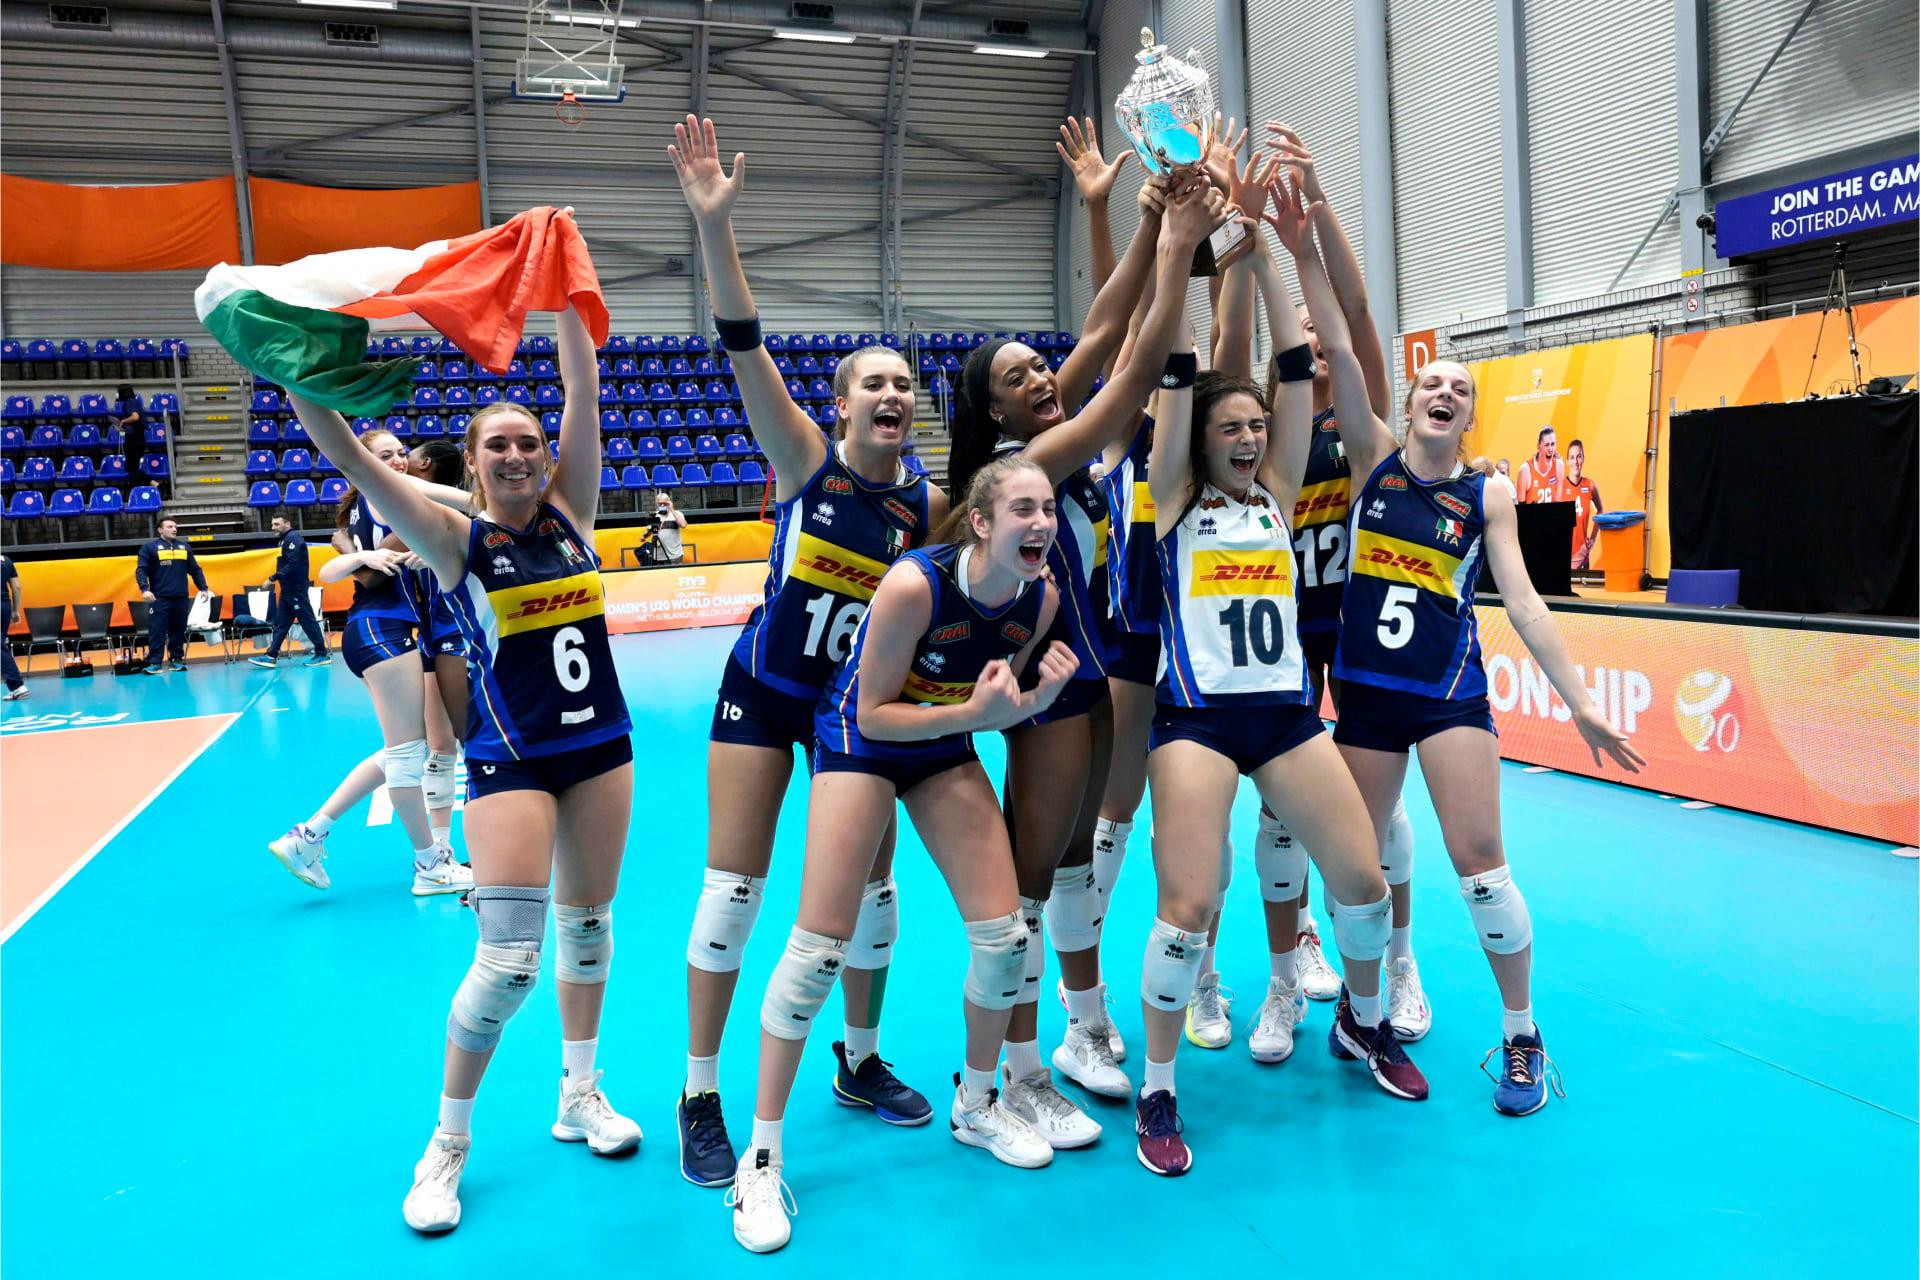 Italy beat Serbia again to win FIVB Women's Under-20 World Championship